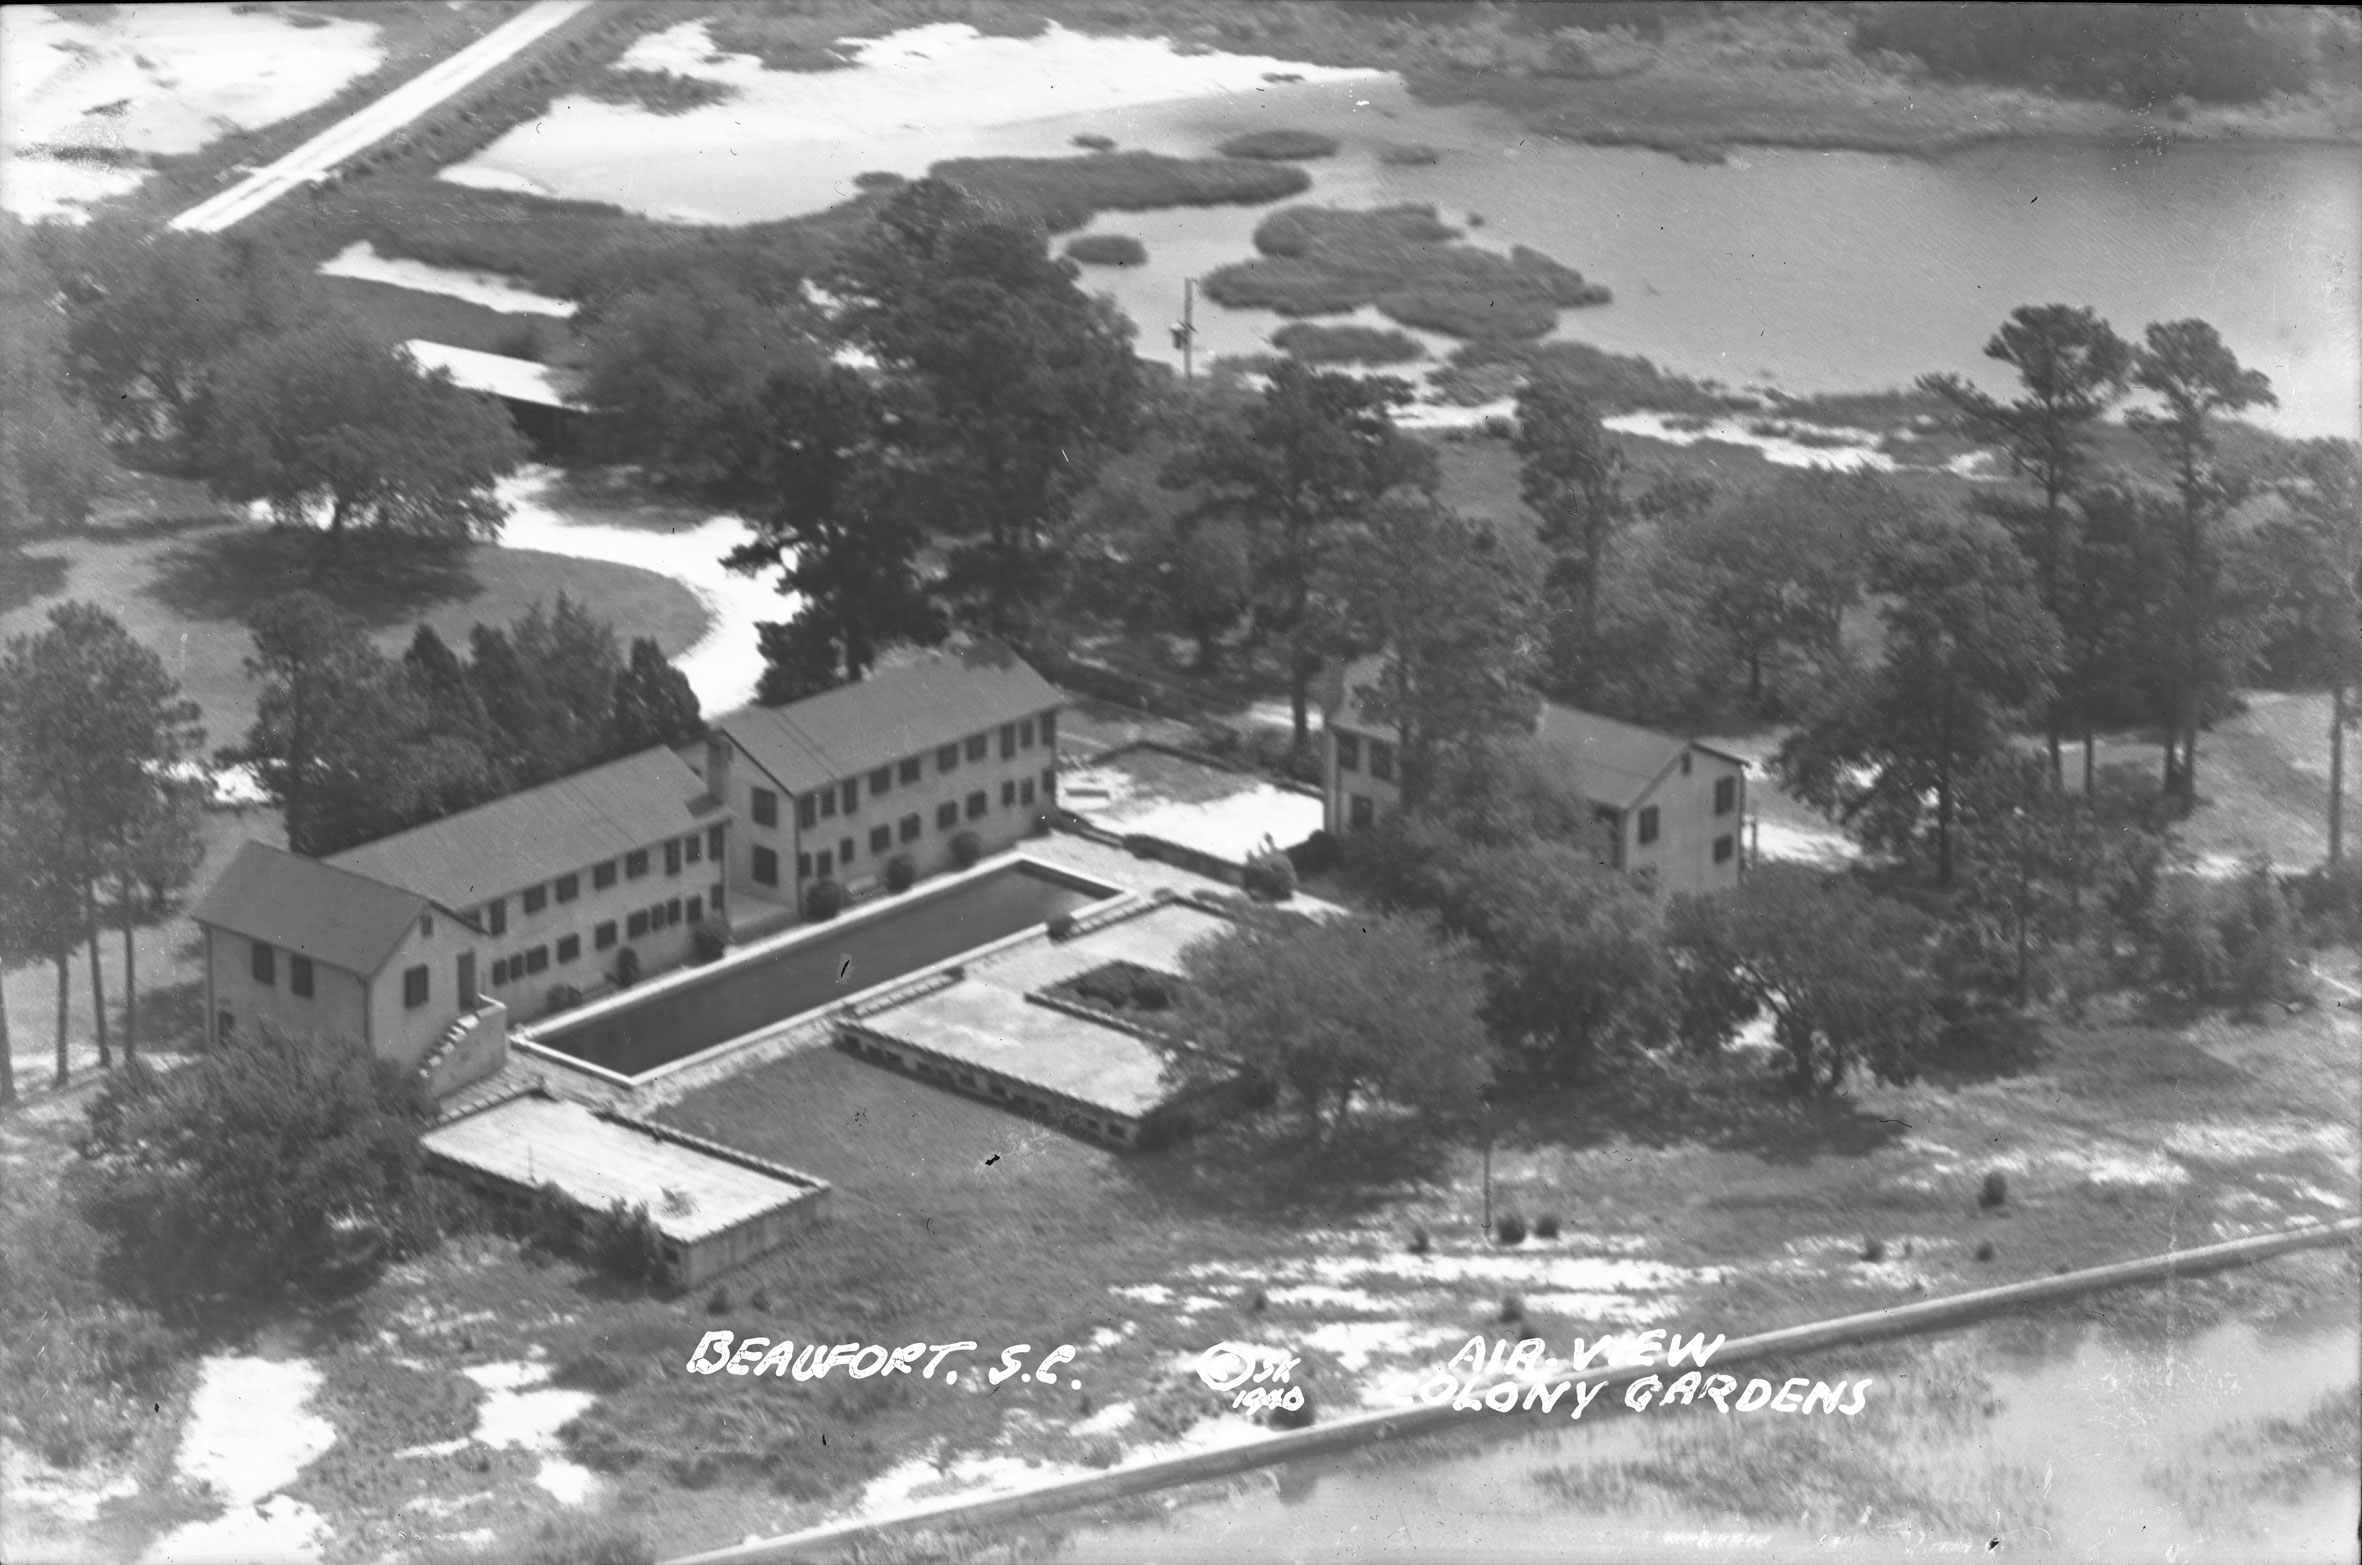 Colony Gardens Air View Beaufort, S.C.